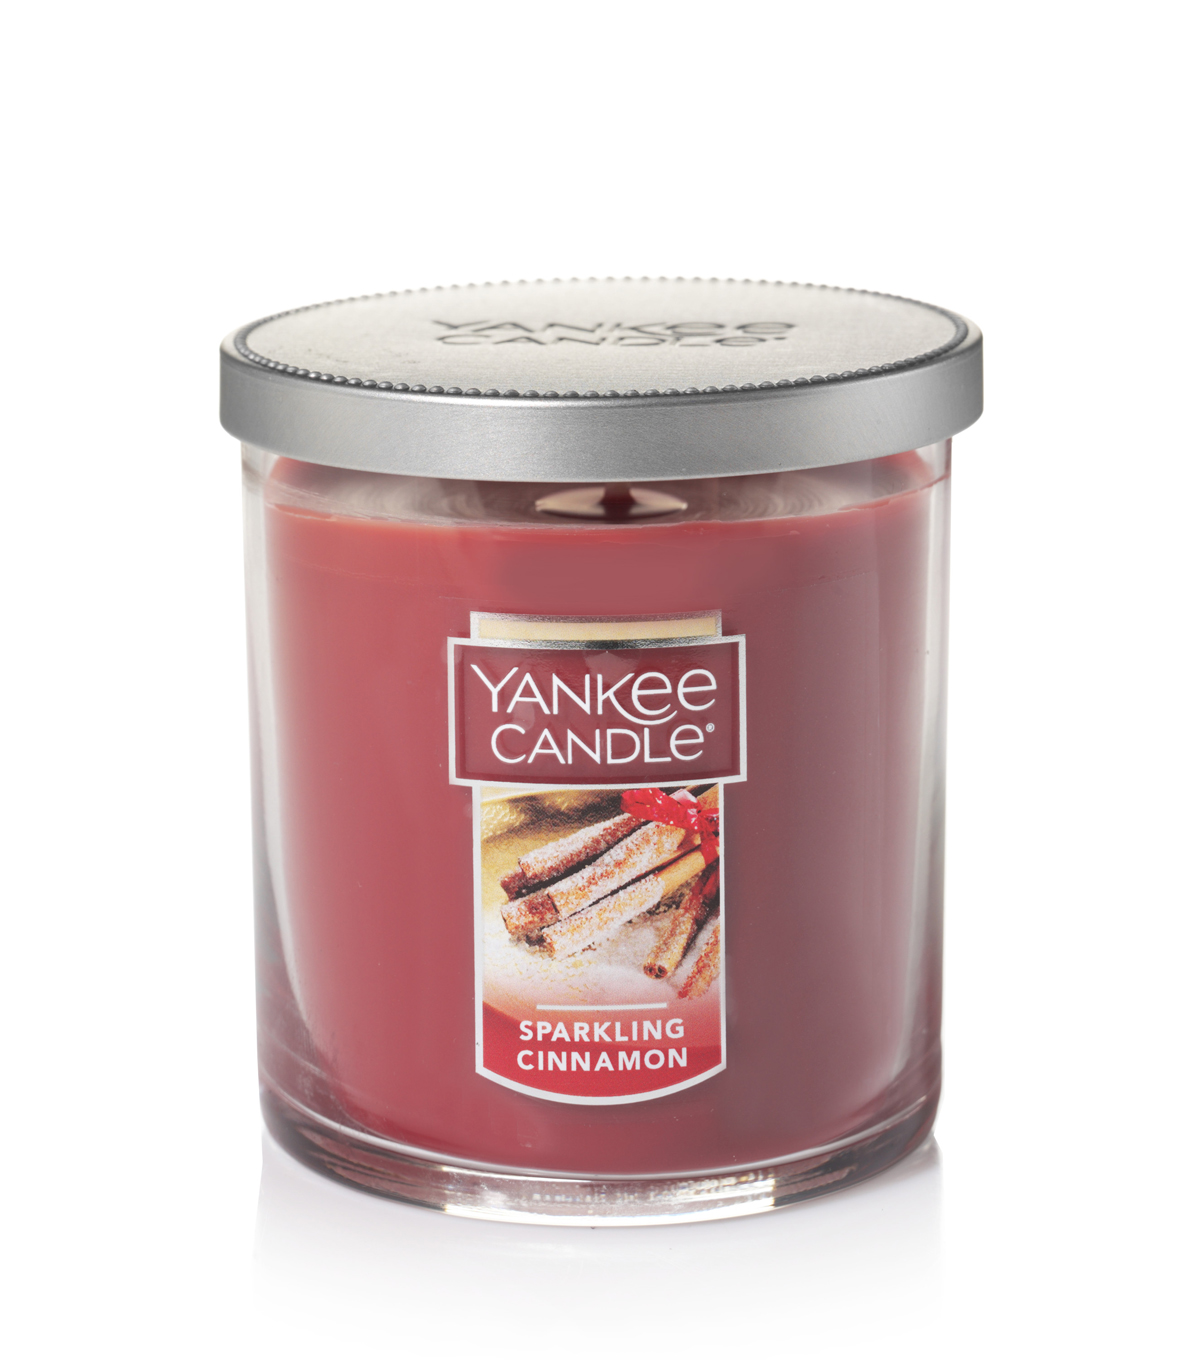 Yankee Candle Small 7 oz. Sparkling Cinnamon Scented Tumbler Candle